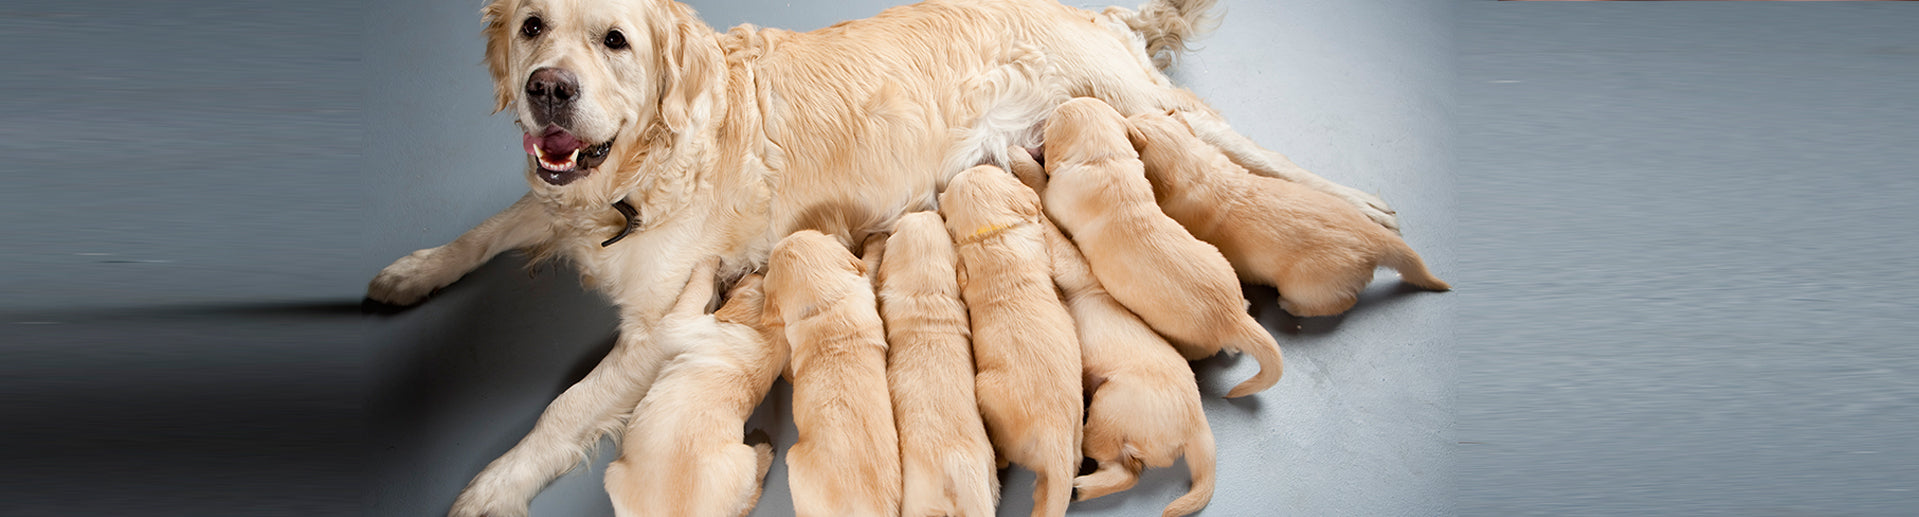 How Can I Tell if My Dog is Ready to Breed?